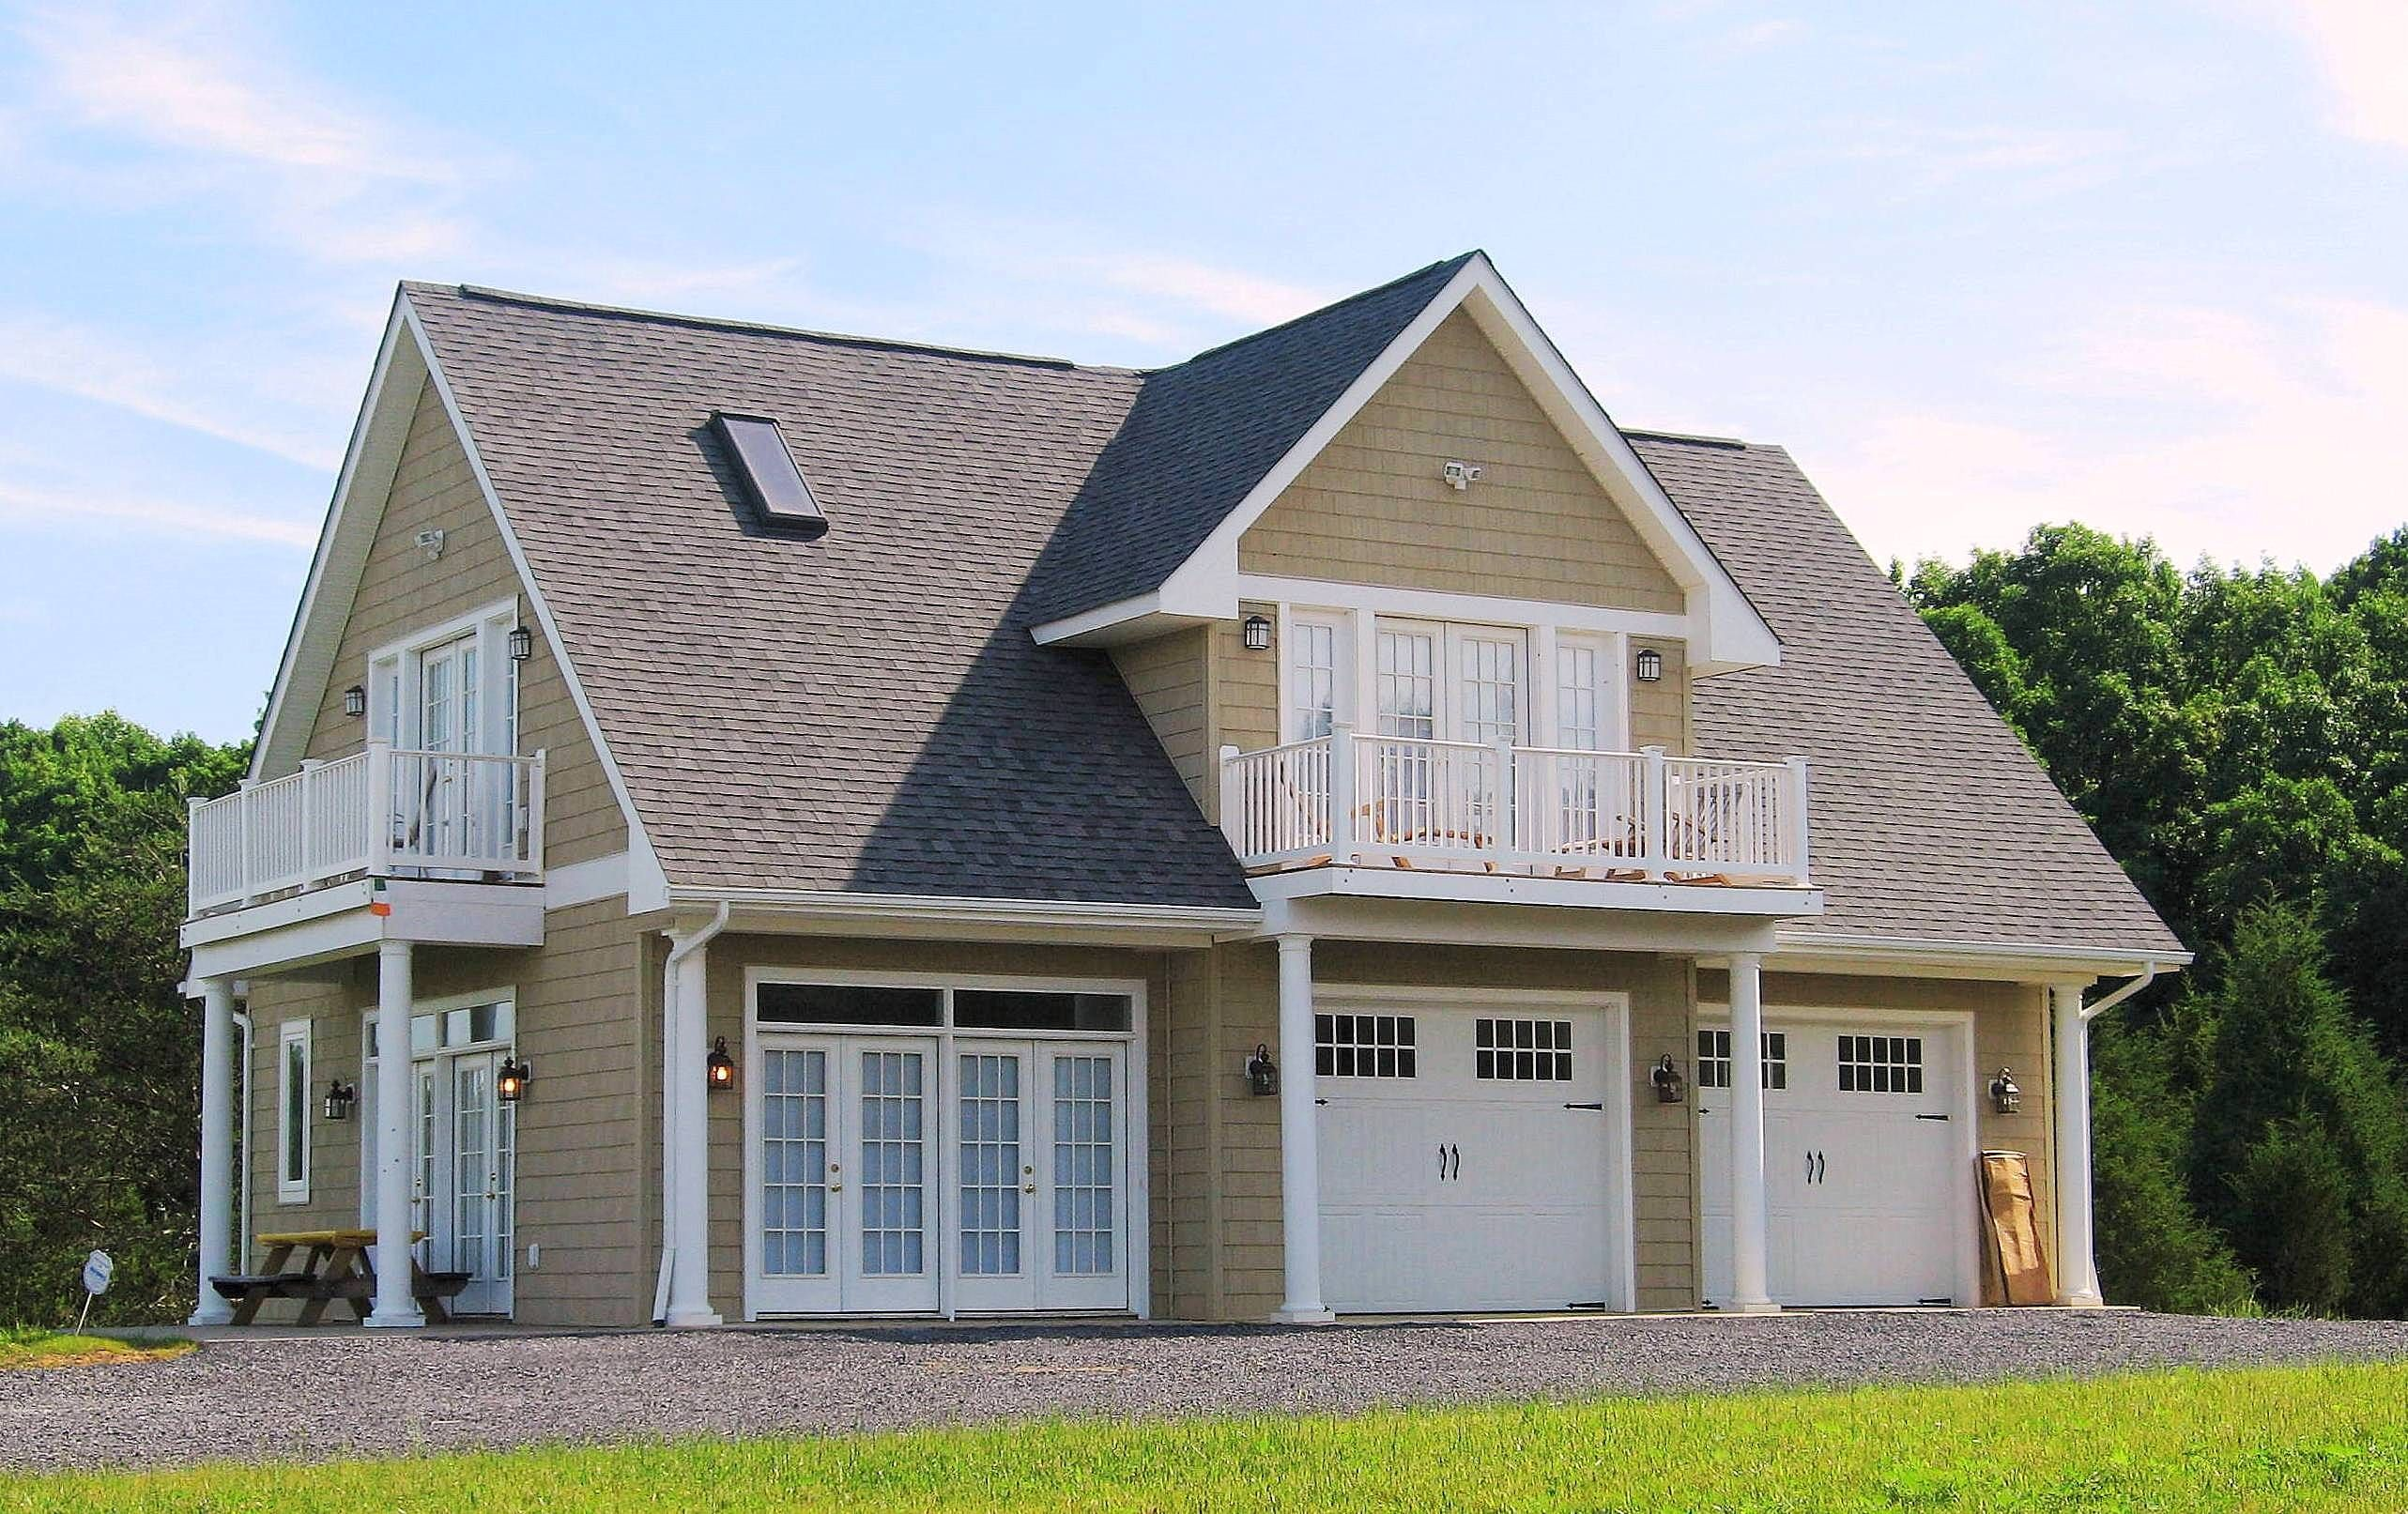 40 Best Detached Garage Model For Your Wonderful House Prefab Garage With Apartment Above Garage Apartment Carriage House Plans